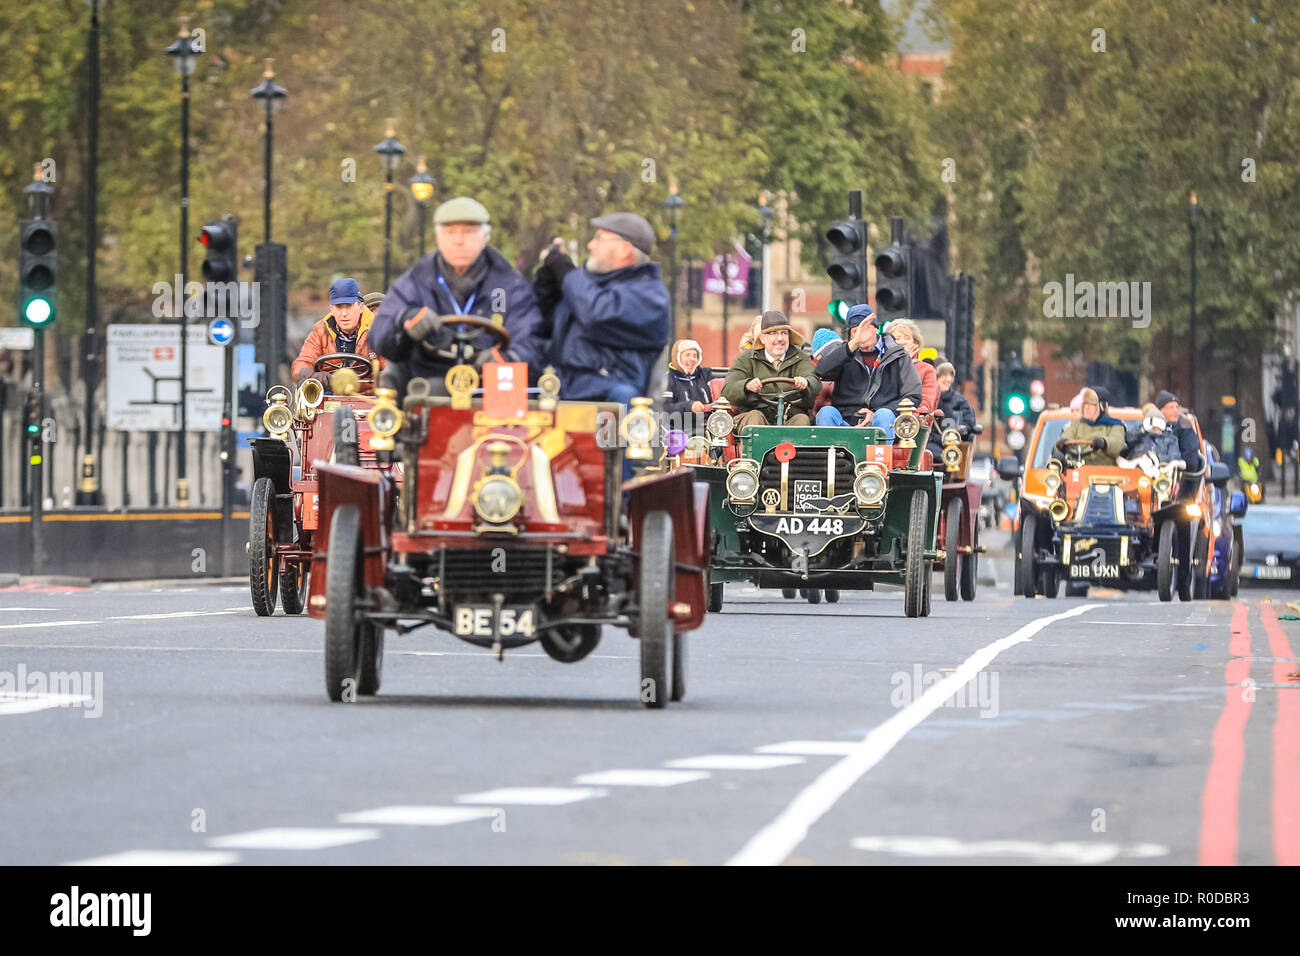 Westminster Bridge, London, UK, 4th Nov 2018. A group of the veteran cars approaches together. The World's longest running motoring event, Bonhams London to Brighton Veteran Car Run, sets of from Hyde Park and along Constitution Hill by Buckingham Palace, the Mall and Admiralty Arch, then along a 60 mile route all the way to Brighton. It is this year in its 122nd anniversary run. More than 400 of the veteran cars are from the pre-1905 era. Credit: Imageplotter News and Sports/Alamy Live News - Stock Image